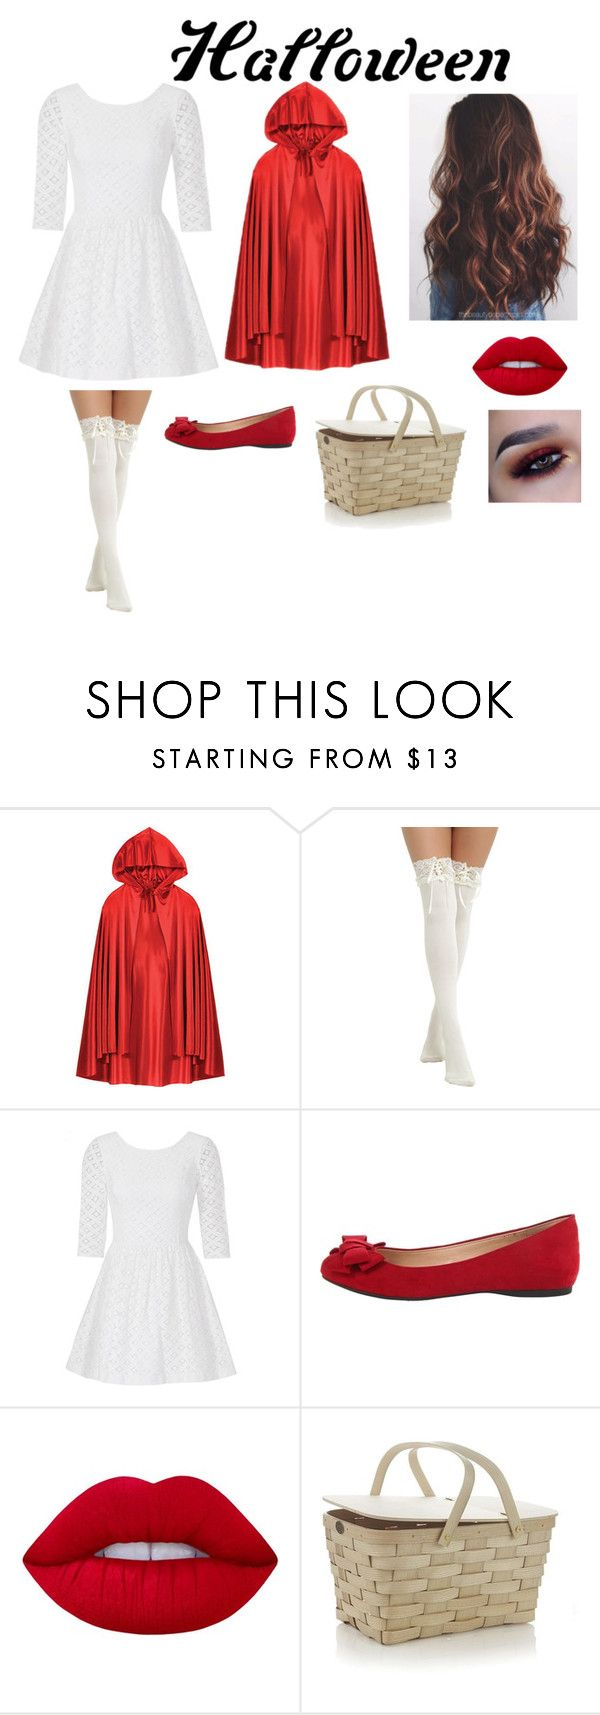 Little red riding hood : DIY  Halloween outfits, Red riding hood